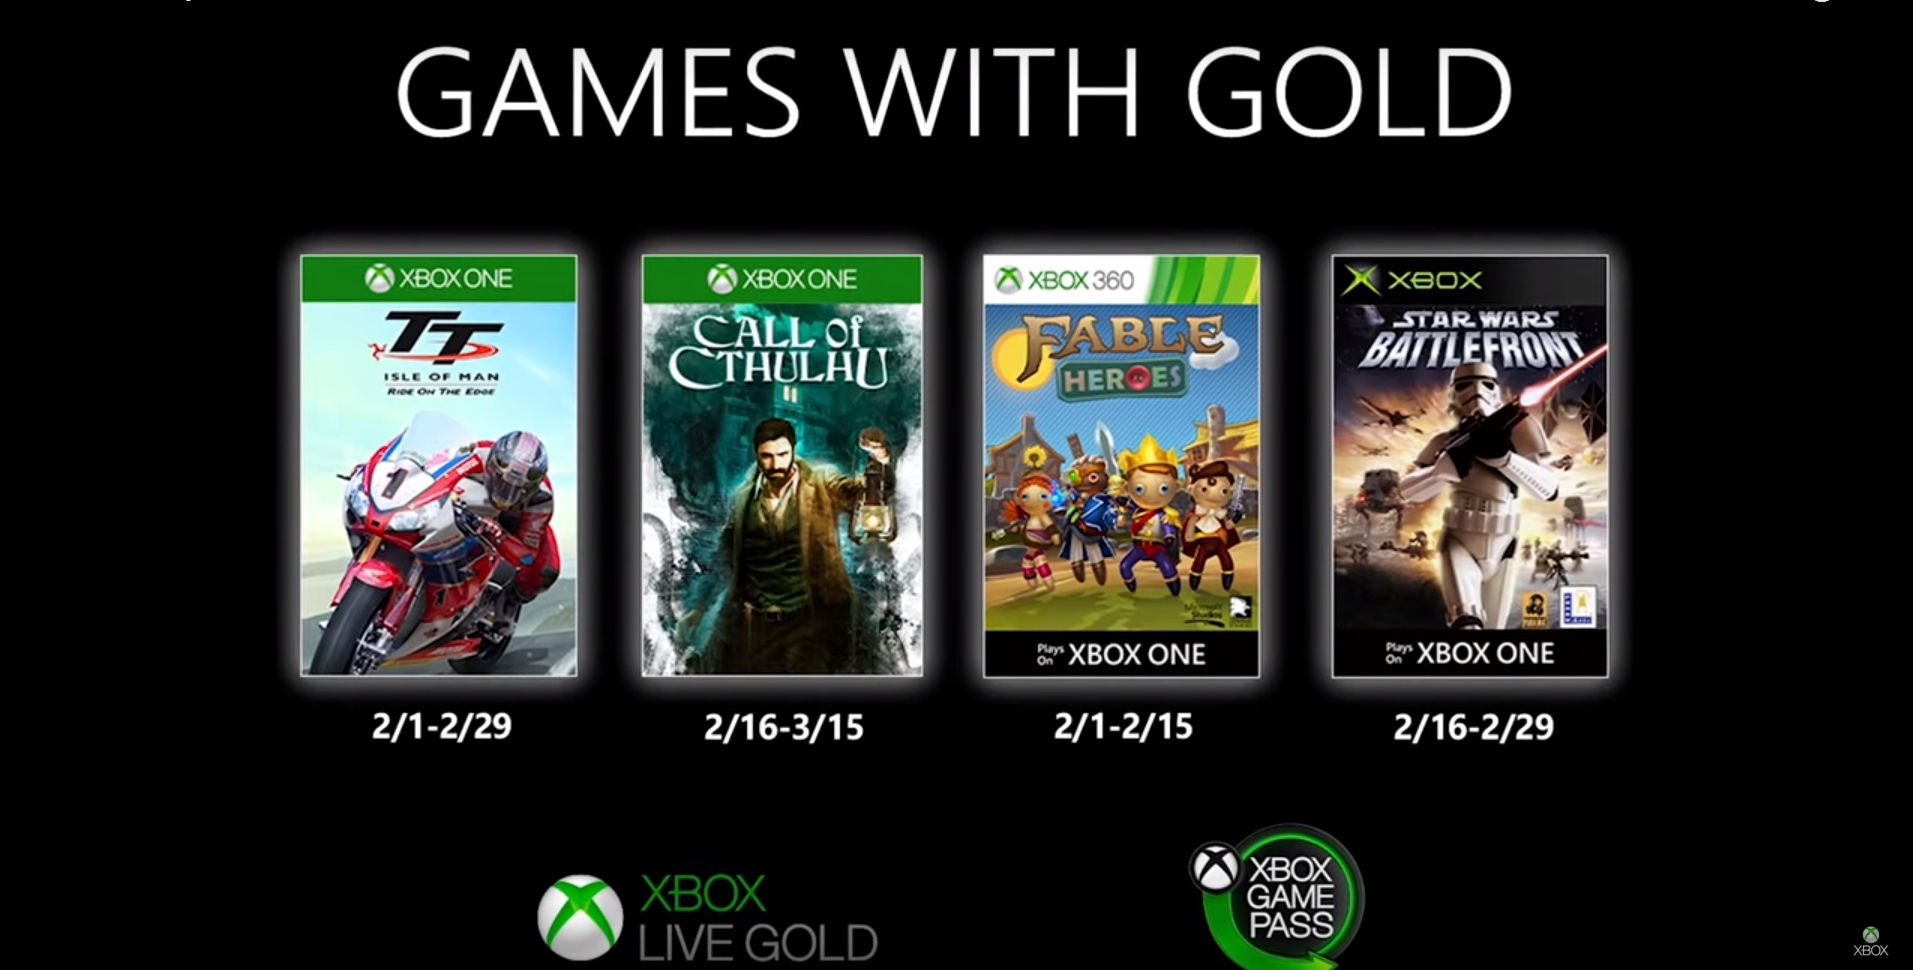 Xbox Announces Four Free Games In February For Games With Gold Service